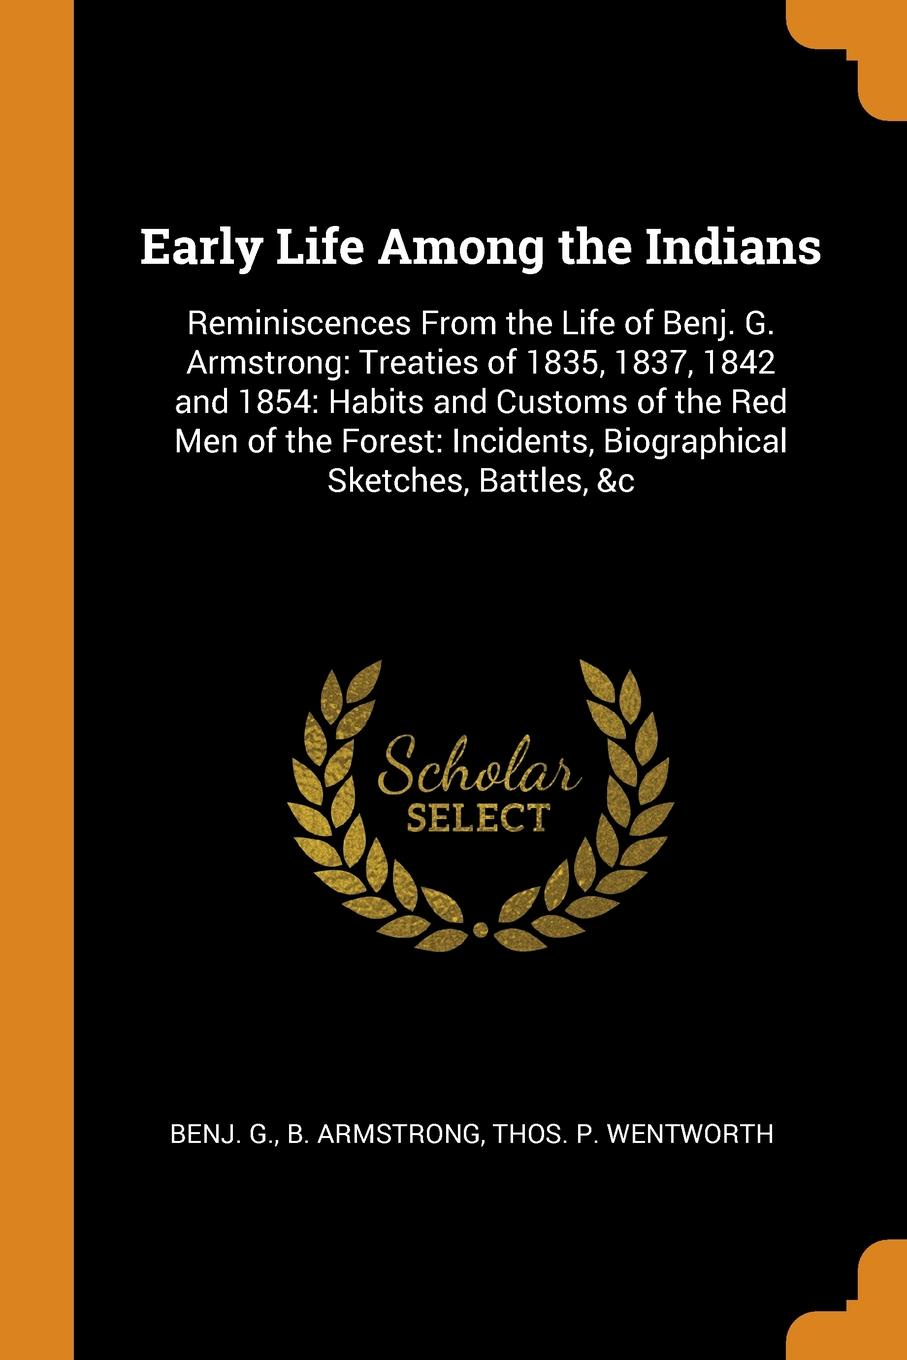 Benj. G. b. Armstrong, Thos. P. Wentworth Early Life Among the Indians. Reminiscences From the Life of Benj. G. Armstrong: Treaties of 1835, 1837, 1842 and 1854: Habits and Customs of the Red Men of the Forest: Incidents, Biographical Sketches, Battles, .c benjamin armstrong early life among the indians reminiscences from the life of benj g armstrong